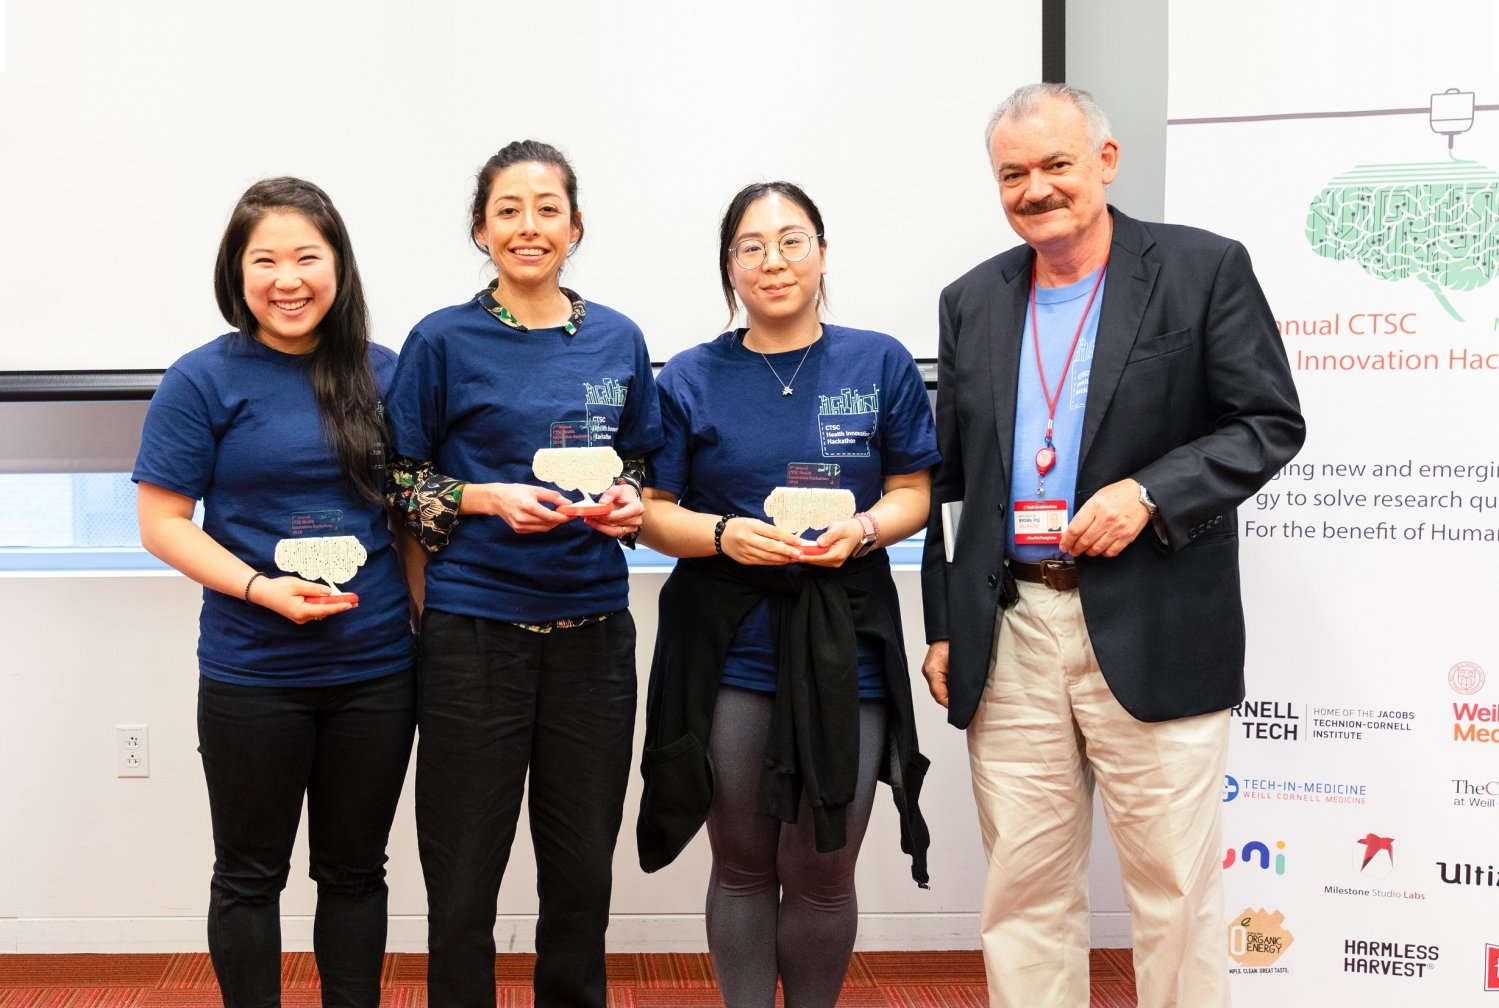 From left: Flora Baik of Weill Cornell Medicine and MSKCC fellows Daly Avendano and Shu Lei alongside Dr. Anthony Brown, the co-director of the CTSC TL1 training program at the second annual Health Innovation Hackathon